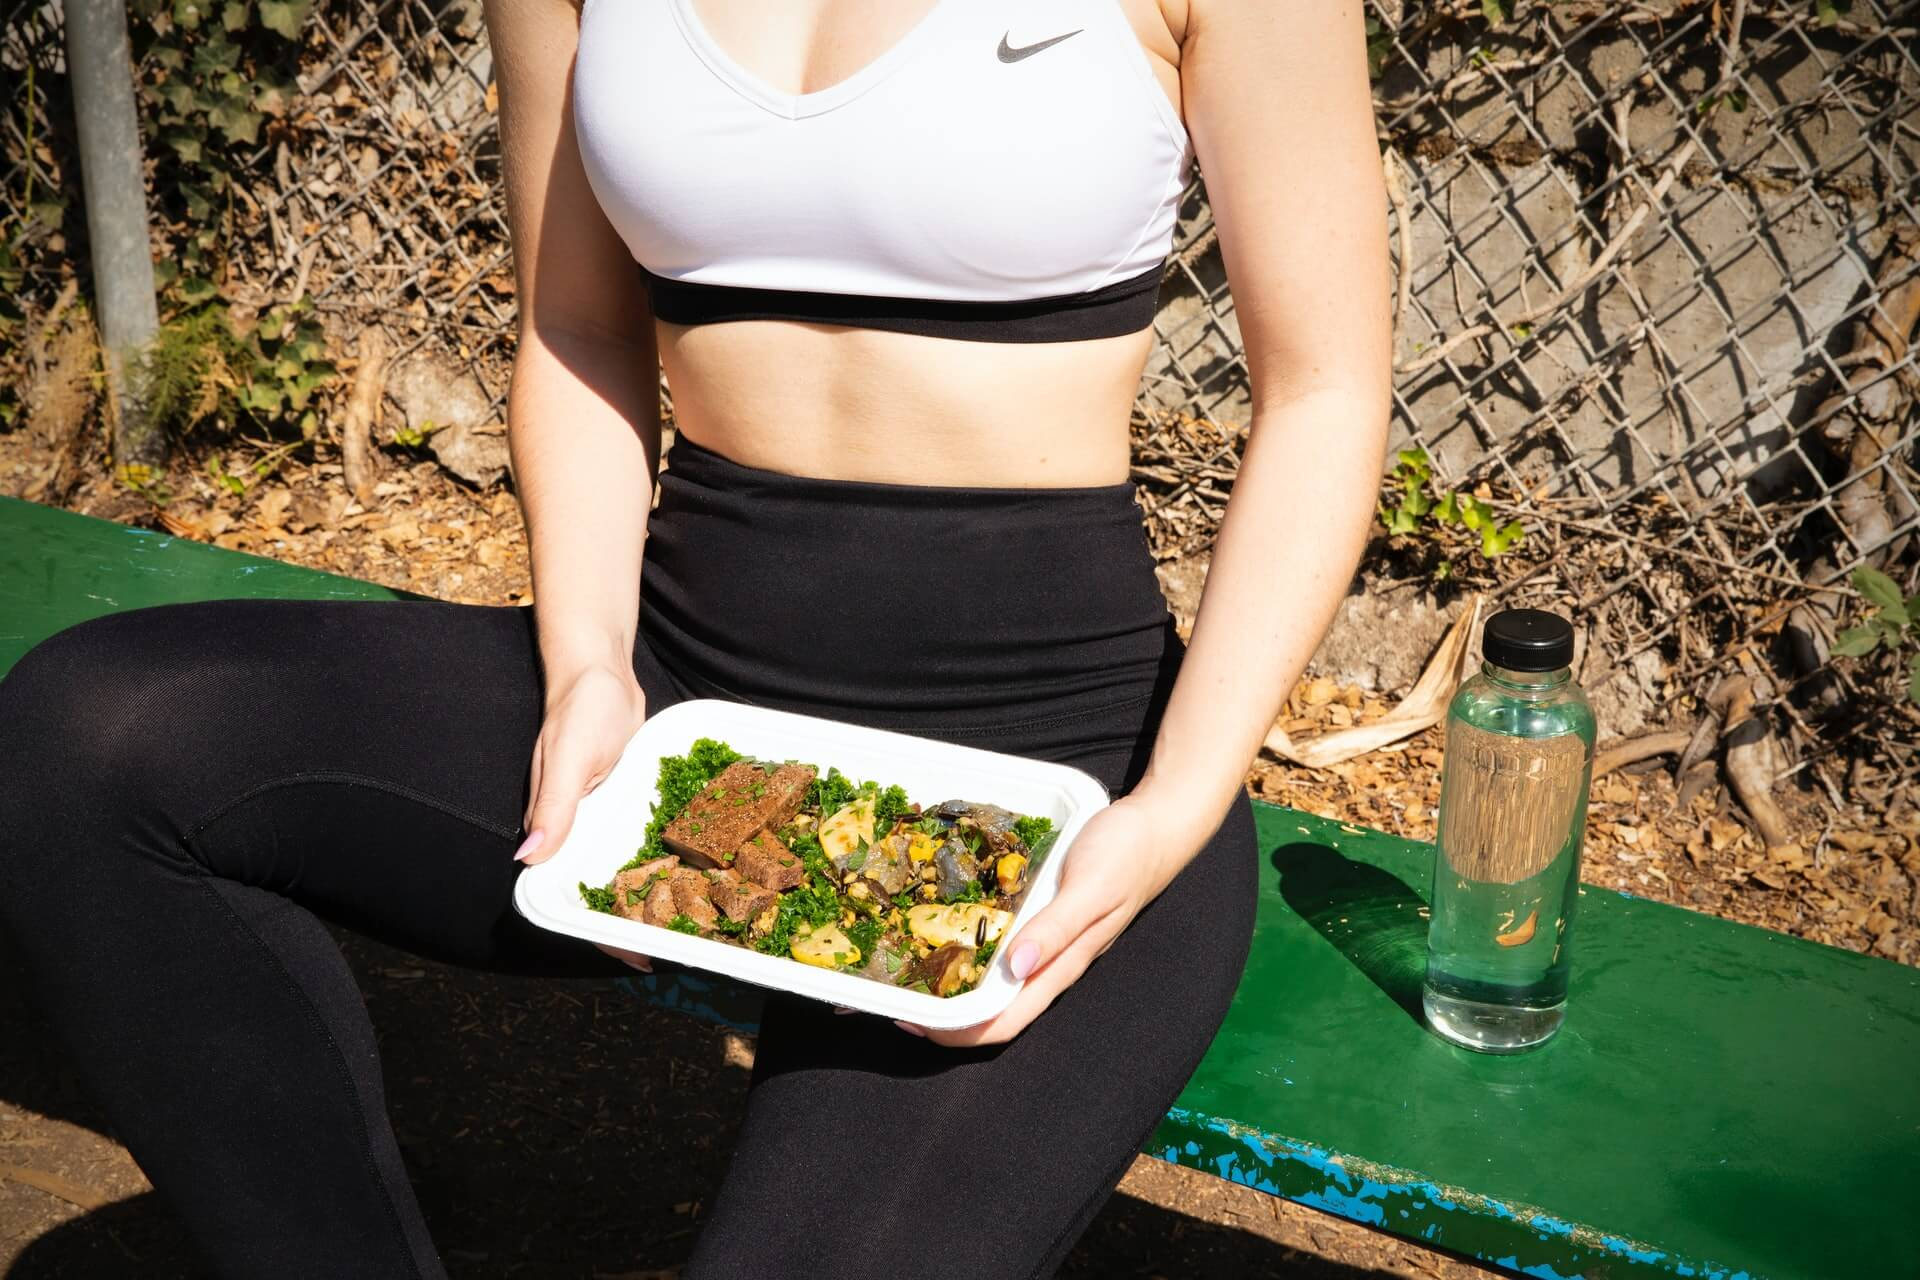 woman wearing athletic attire holding square plate filled with food